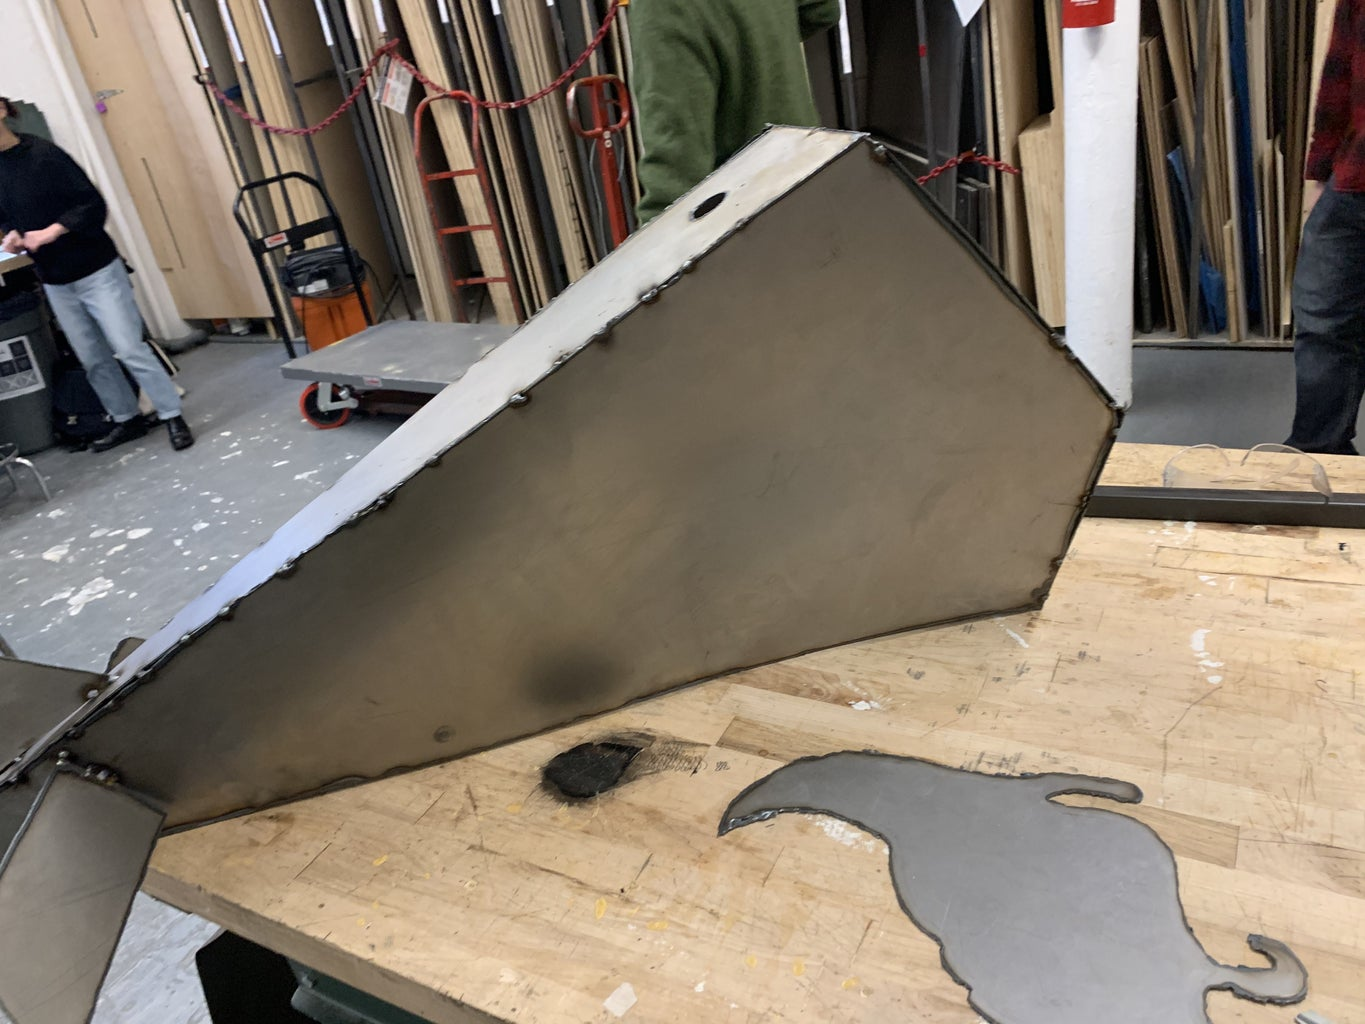 Lay Copter Unpaid Down and Plasma Cut Hole in the Top